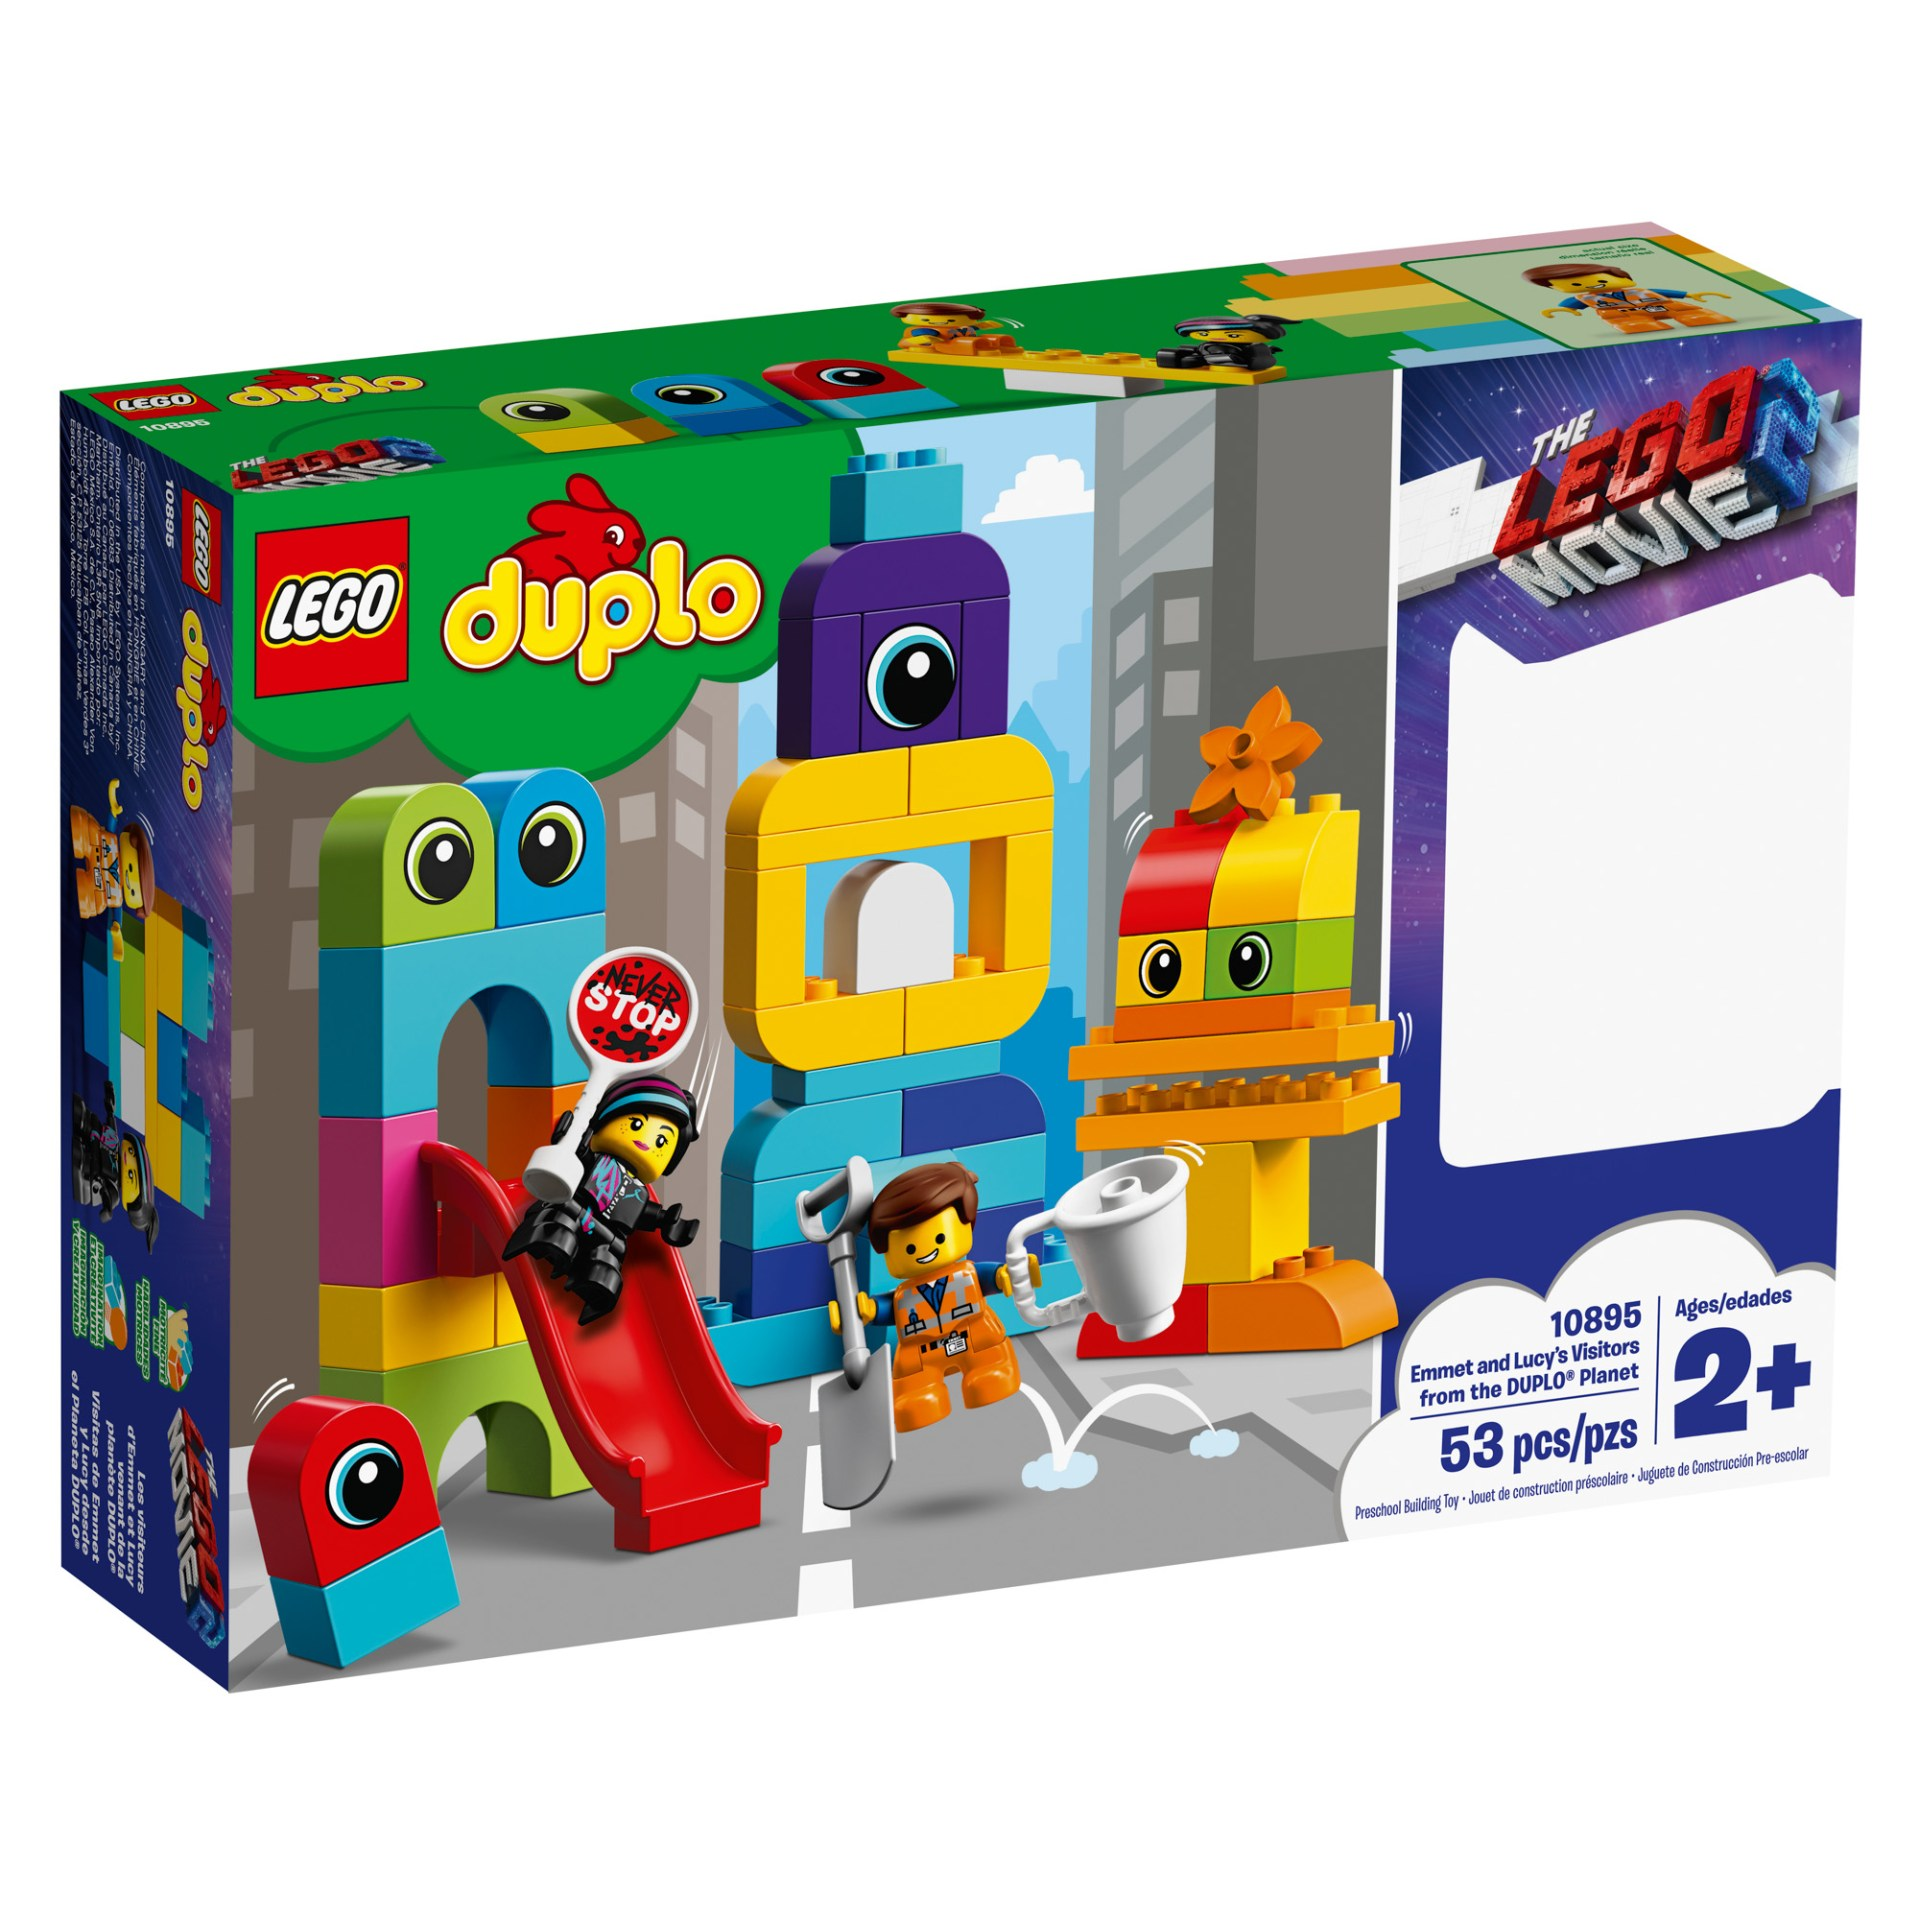 10895 — Emmet and Lucy's Visitors from the DUPLO® Planet